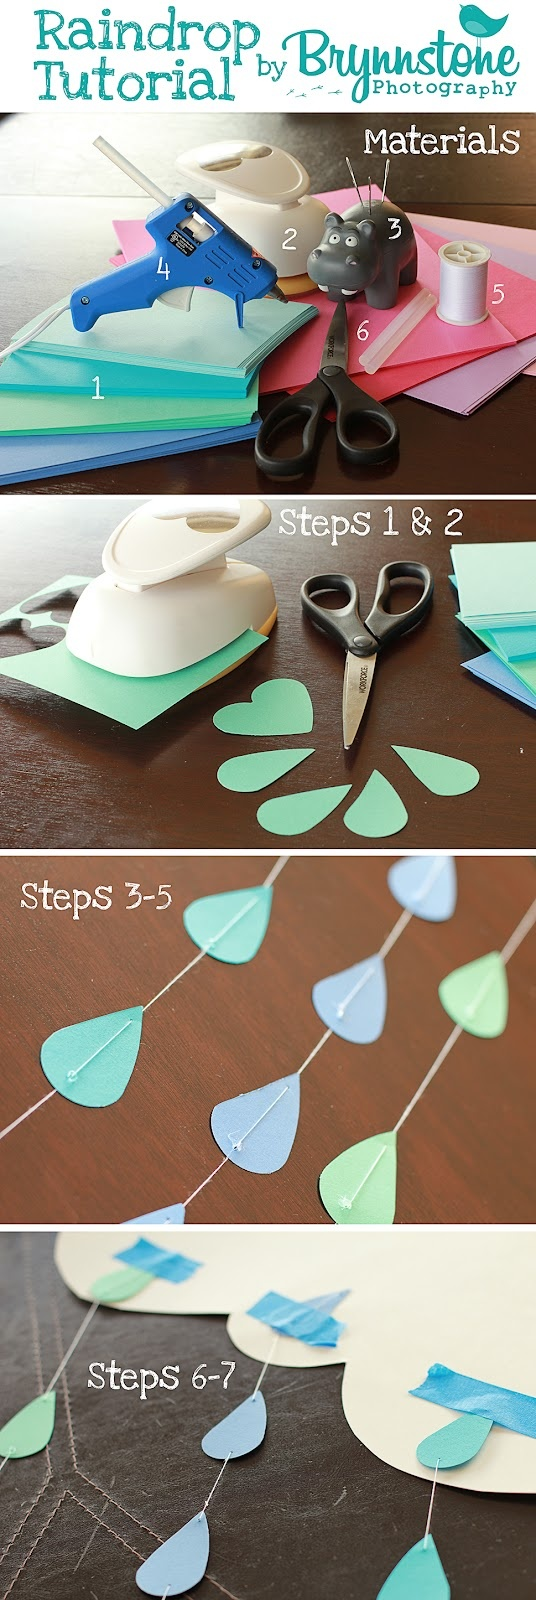 Raindrop & Heart Garland/Backdrop Tutorial!